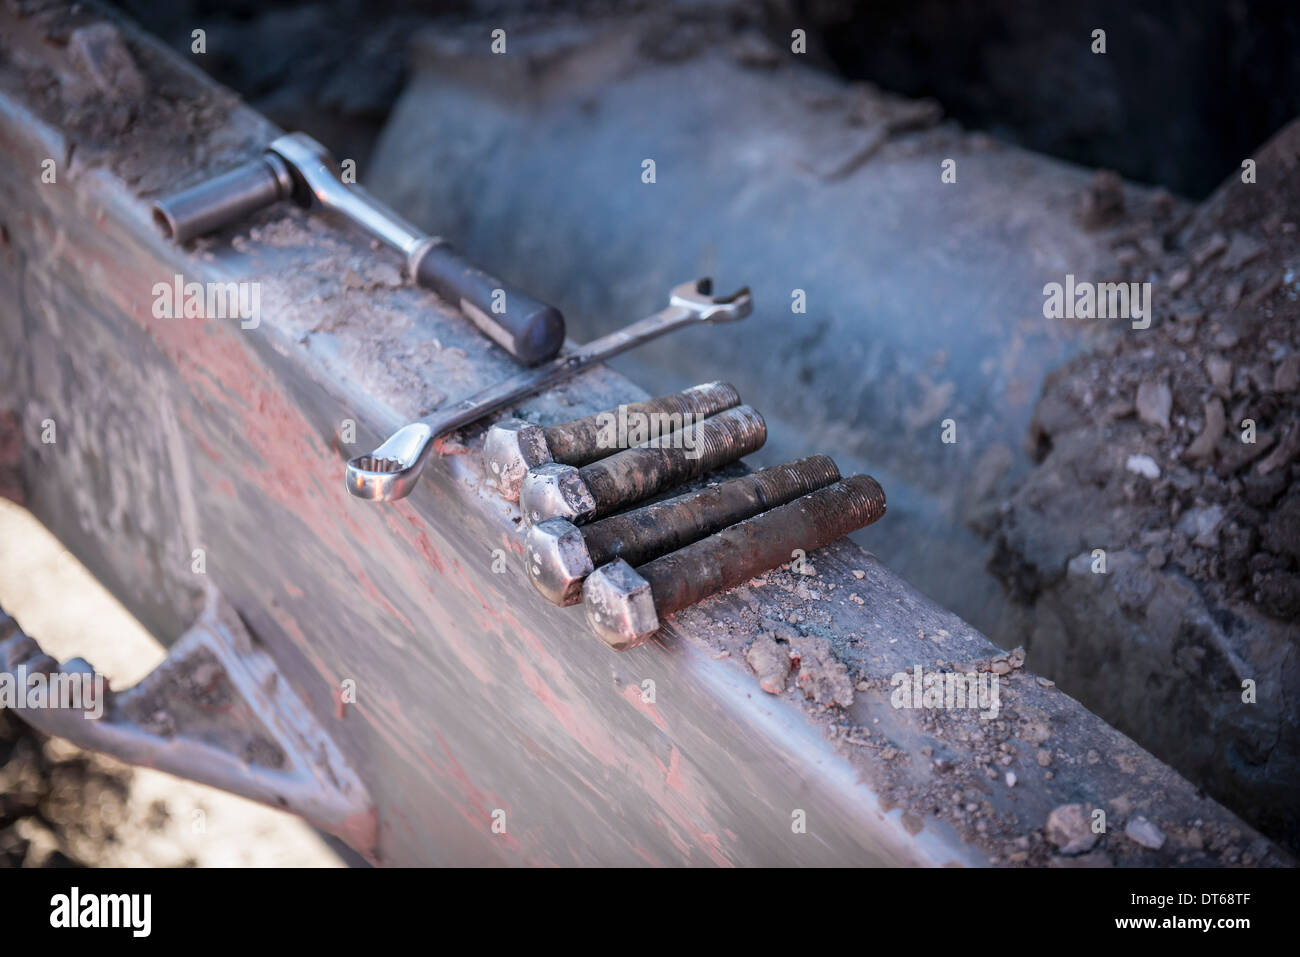 Repairs being made to bulldozer tracks at surface coal mine - Stock Image